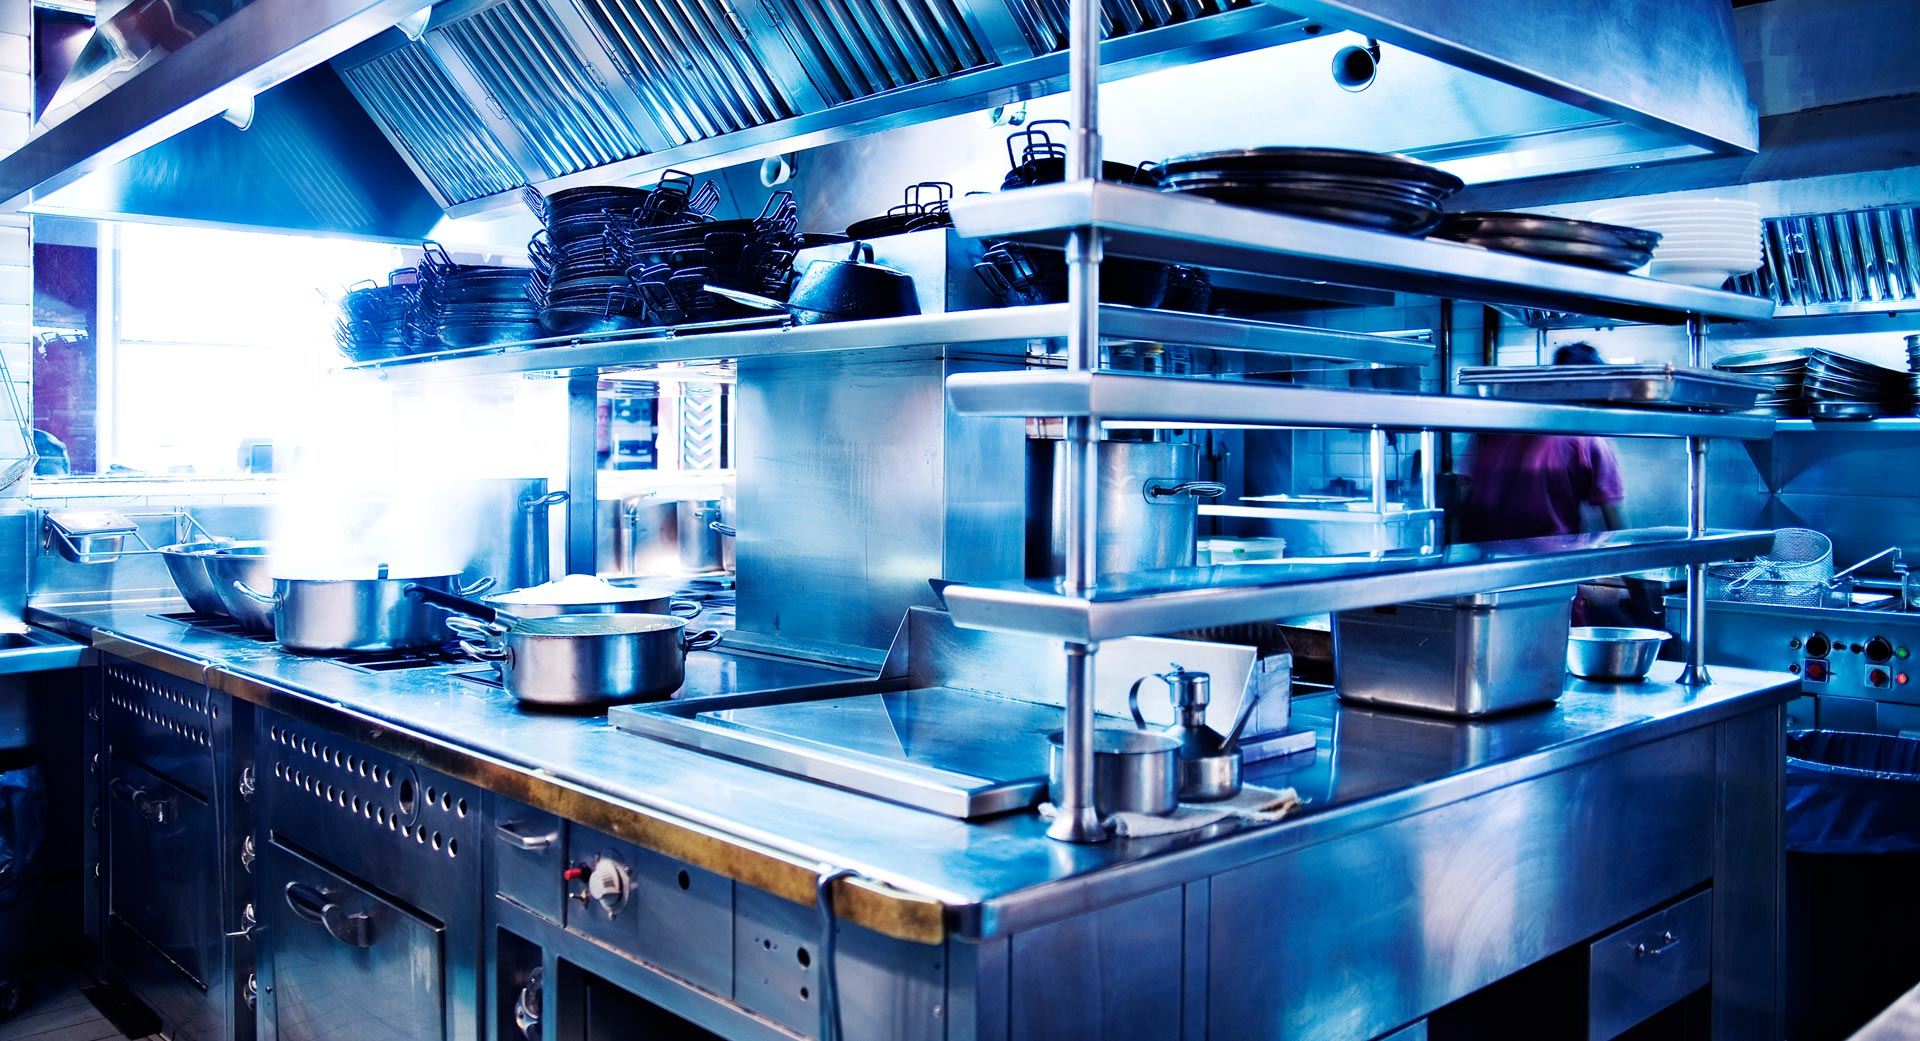 UAT Commercial Foodservice & Laundry Equipment